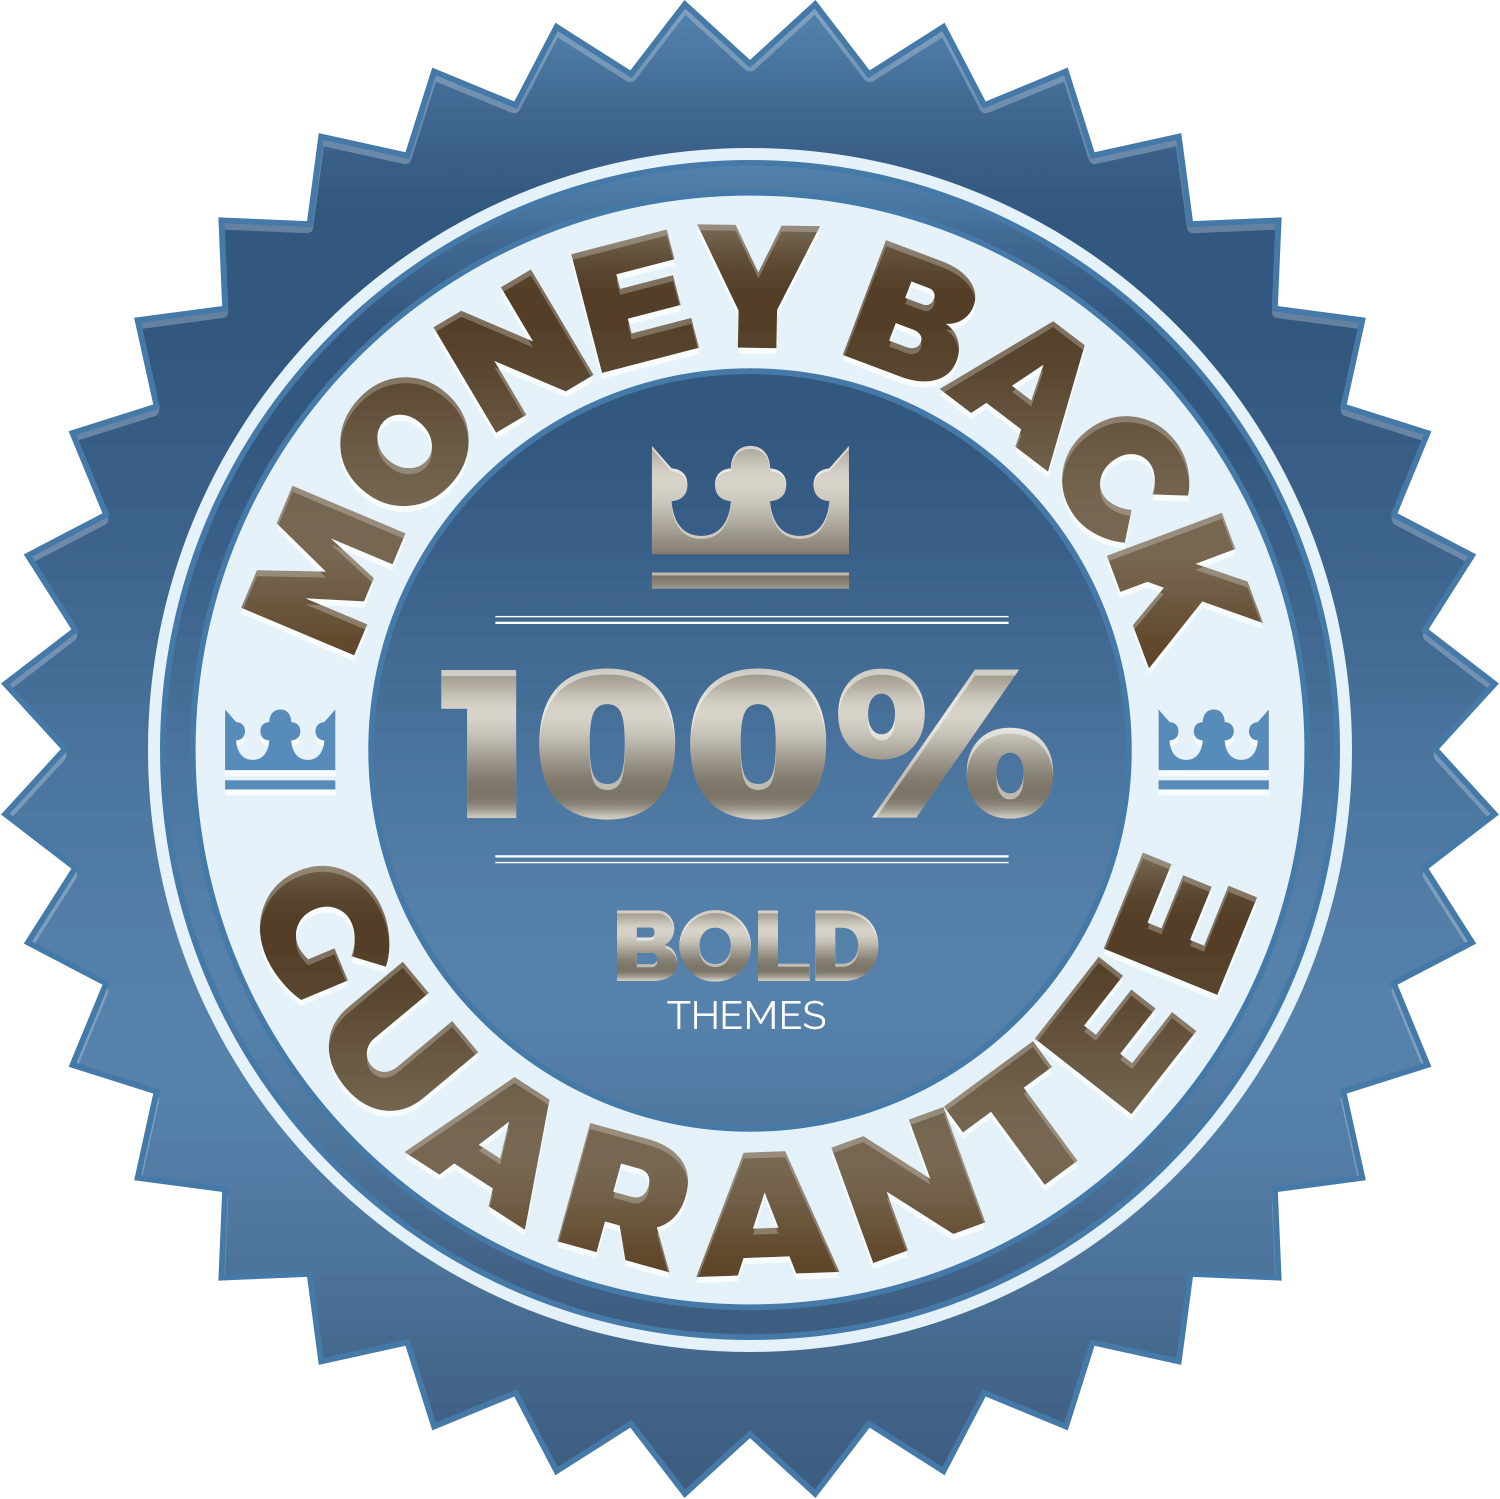 https://xbim.hk/wp-content/uploads/2017/05/Money-back-guarantee.png